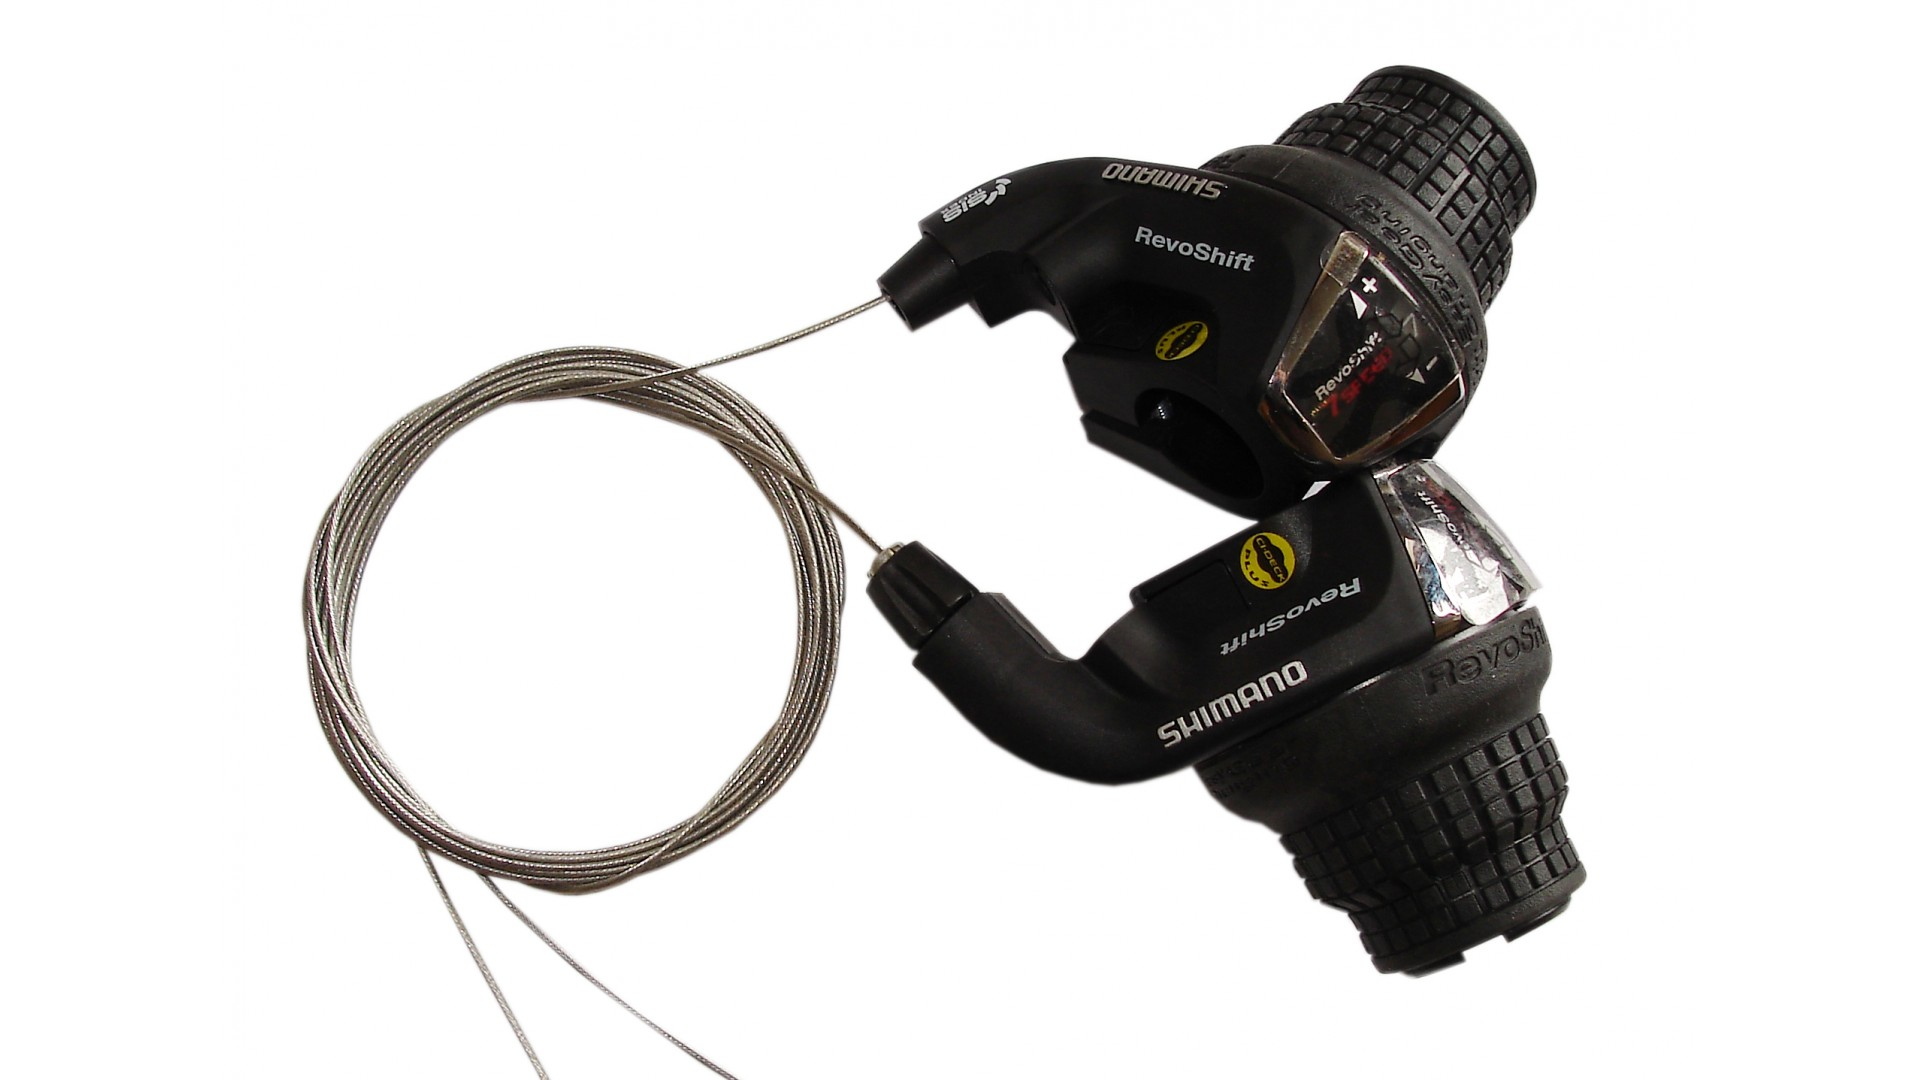 Манетки Shimano SL-RS35 Revoshift, 3x7ск. (комплект)